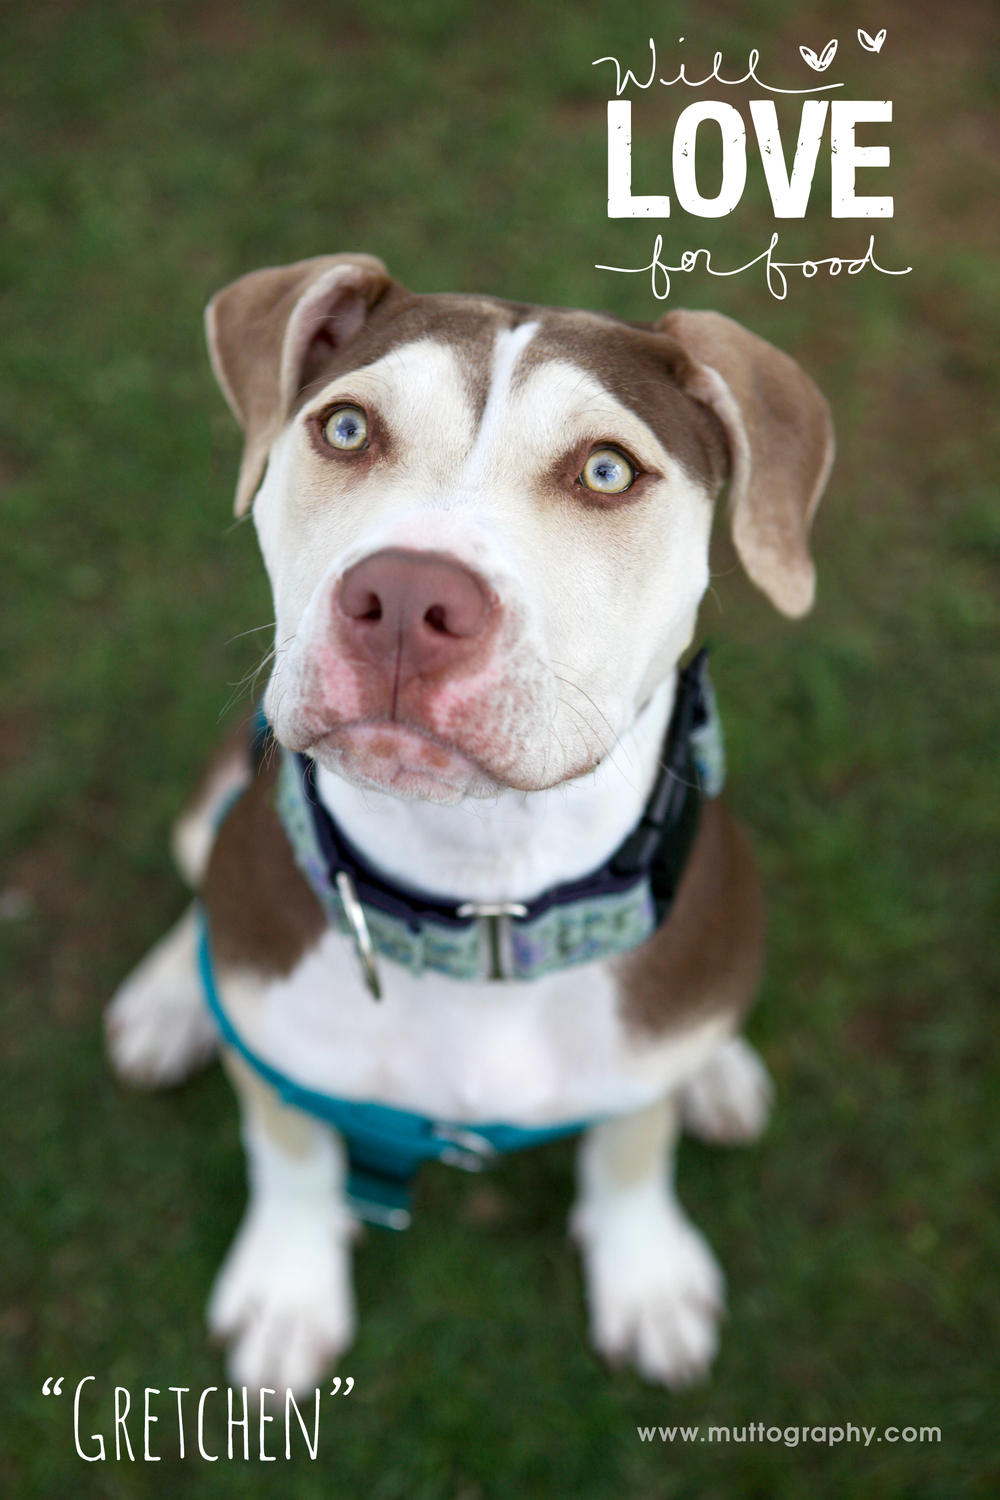 7 months old and looking for love in all the right places! For more info on Gretchen and our other available pups, please go to our adoptable page. This beautiful photo courtesy of Muttography.